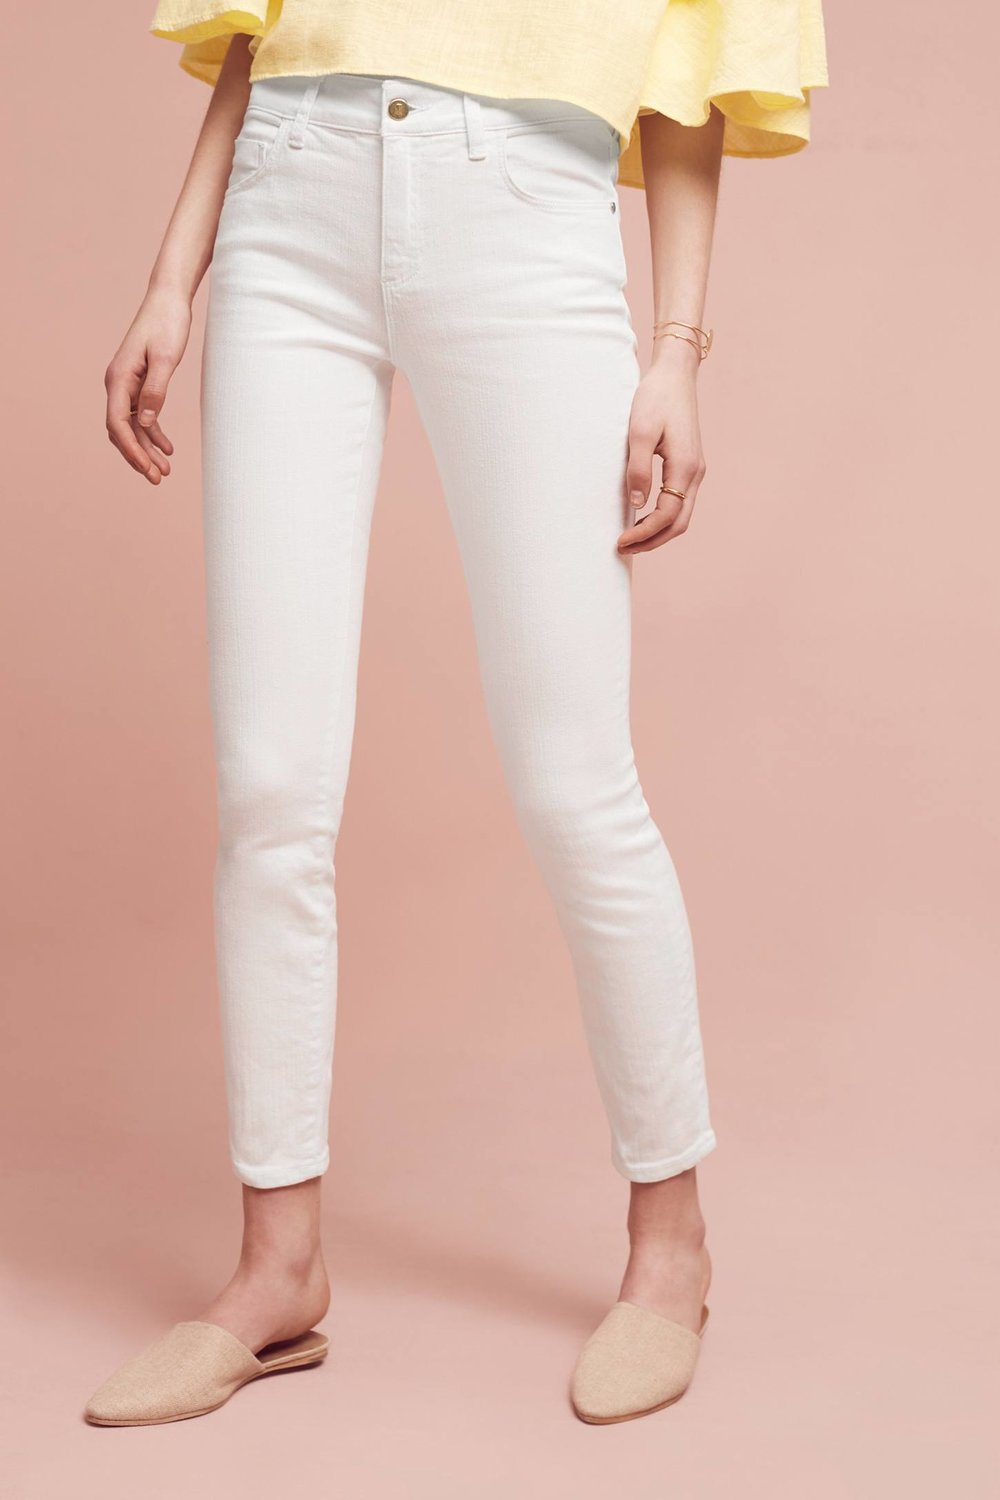 Pilcro Script High-Rise Skinny Jeans. Anthropologie. $128.